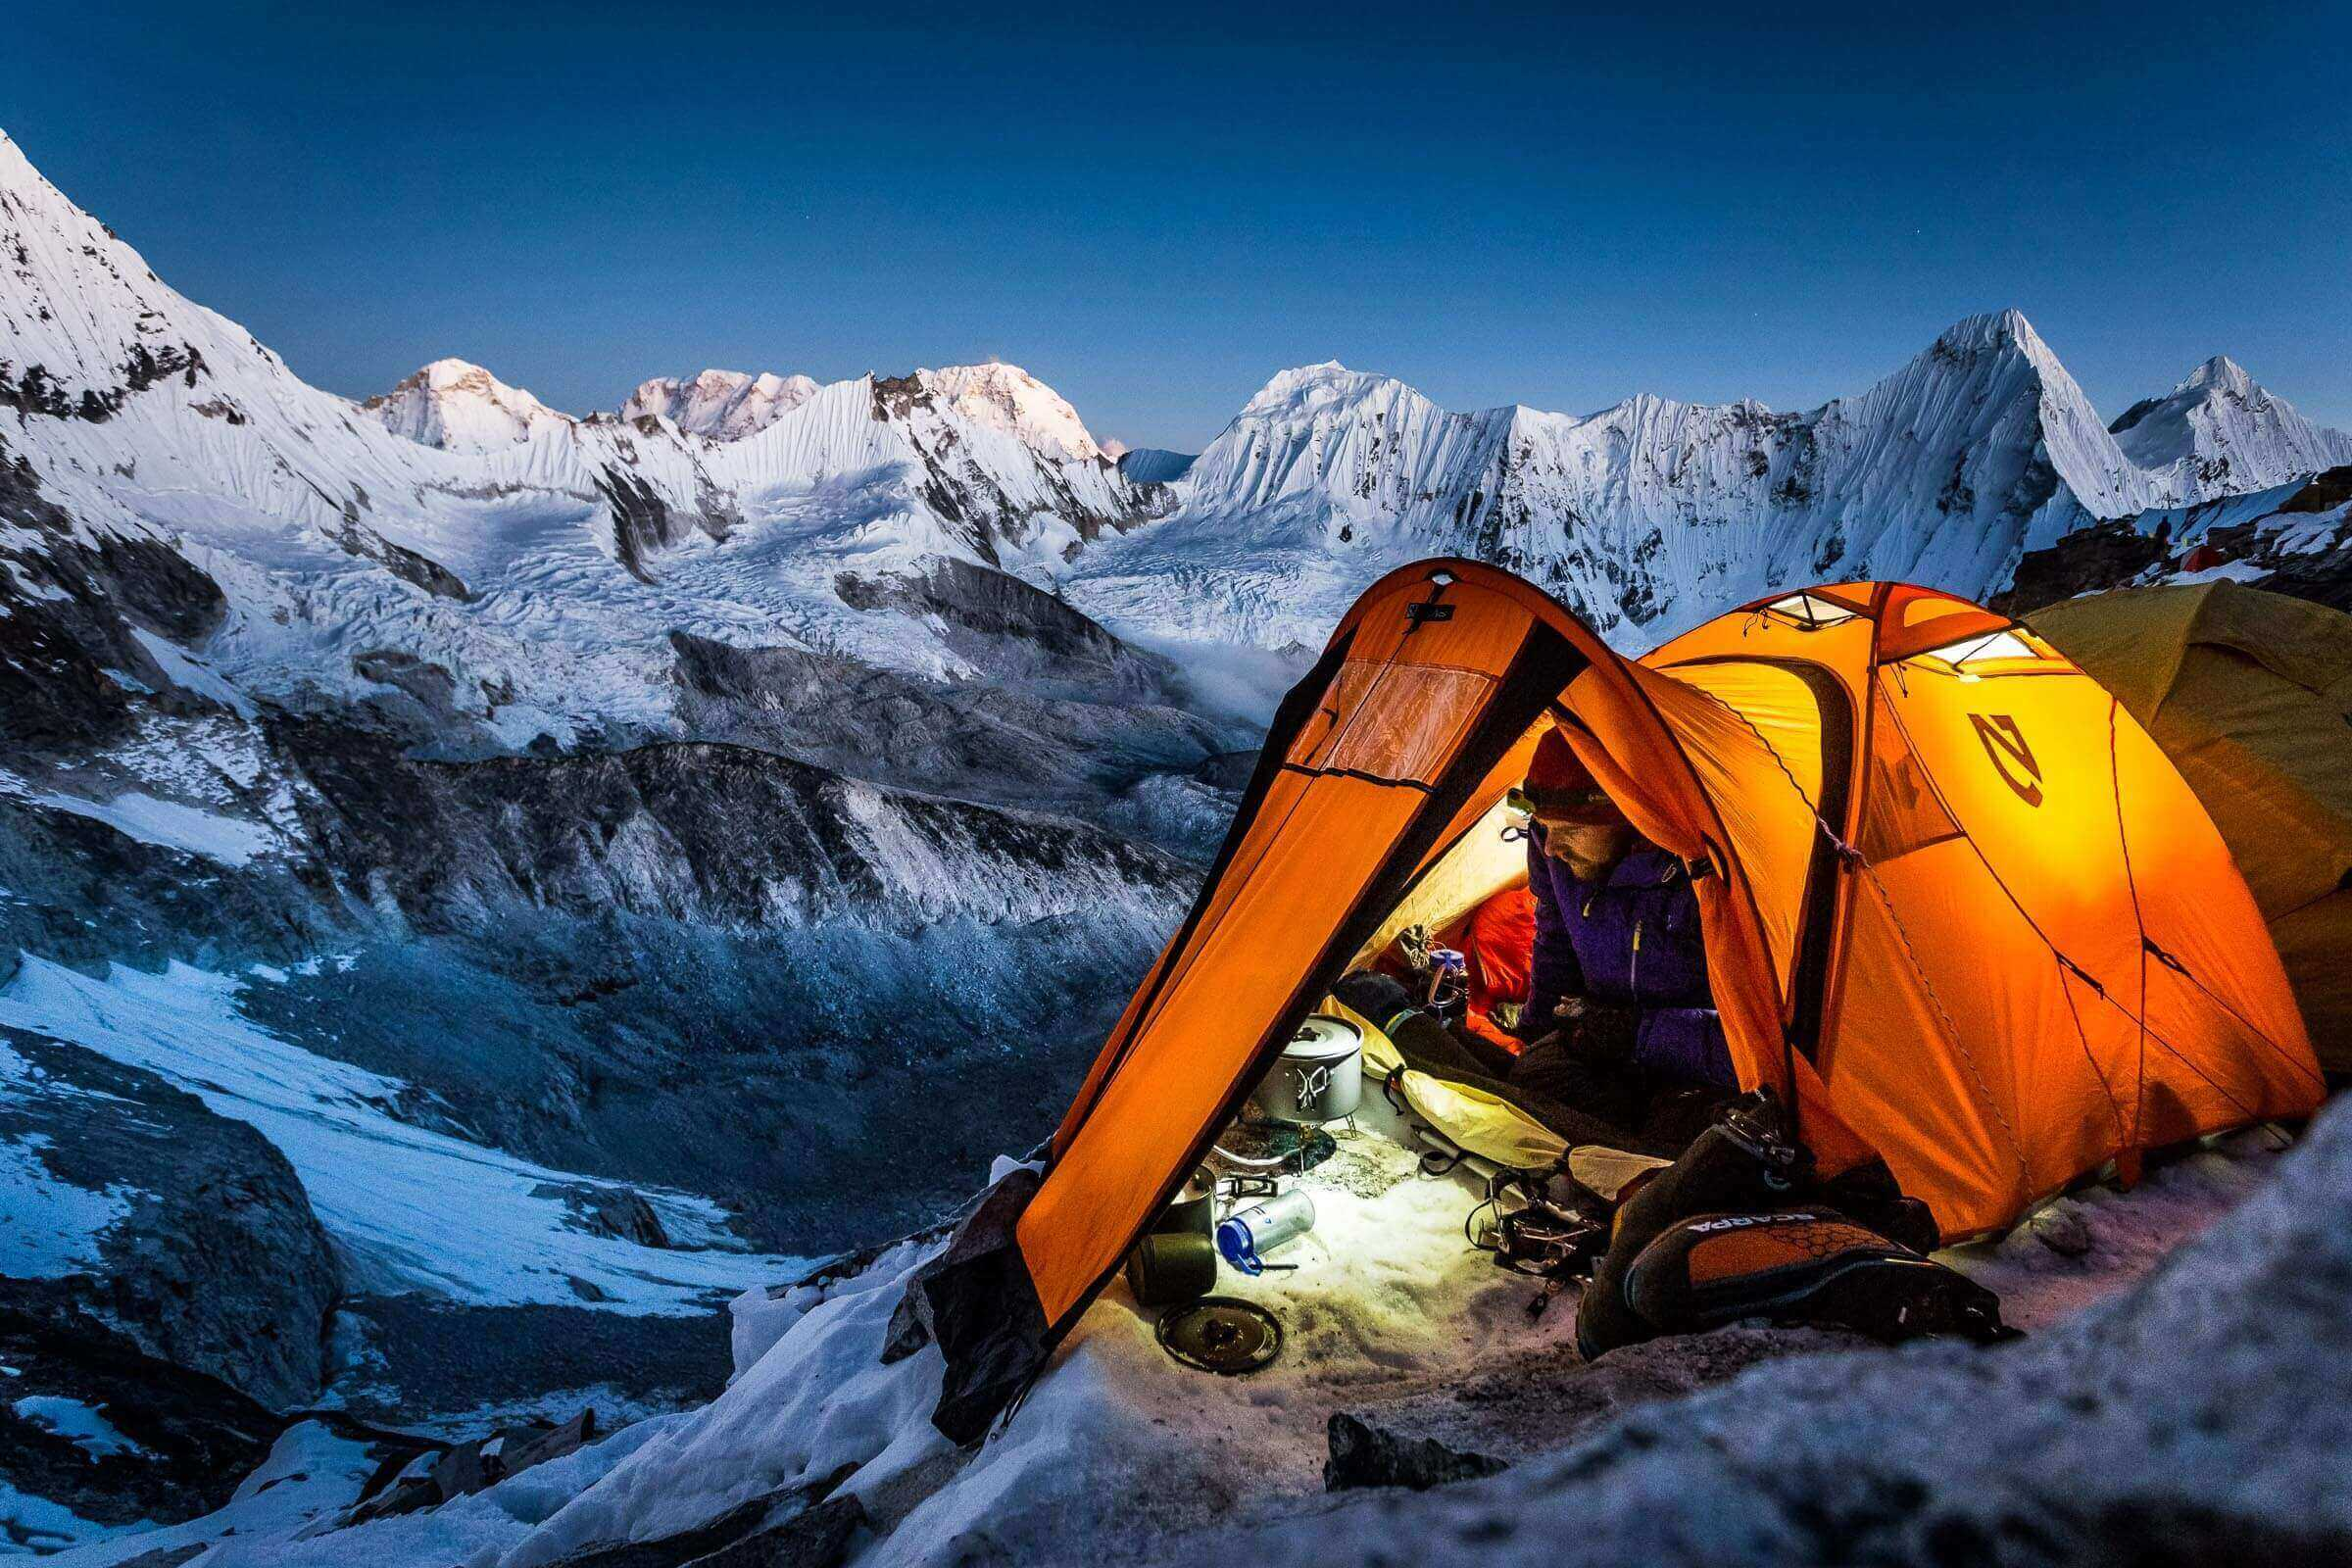 Self portrait whilst camped at 5700m on the South West Ridge of Ama Dablam (6812m) in Nepal